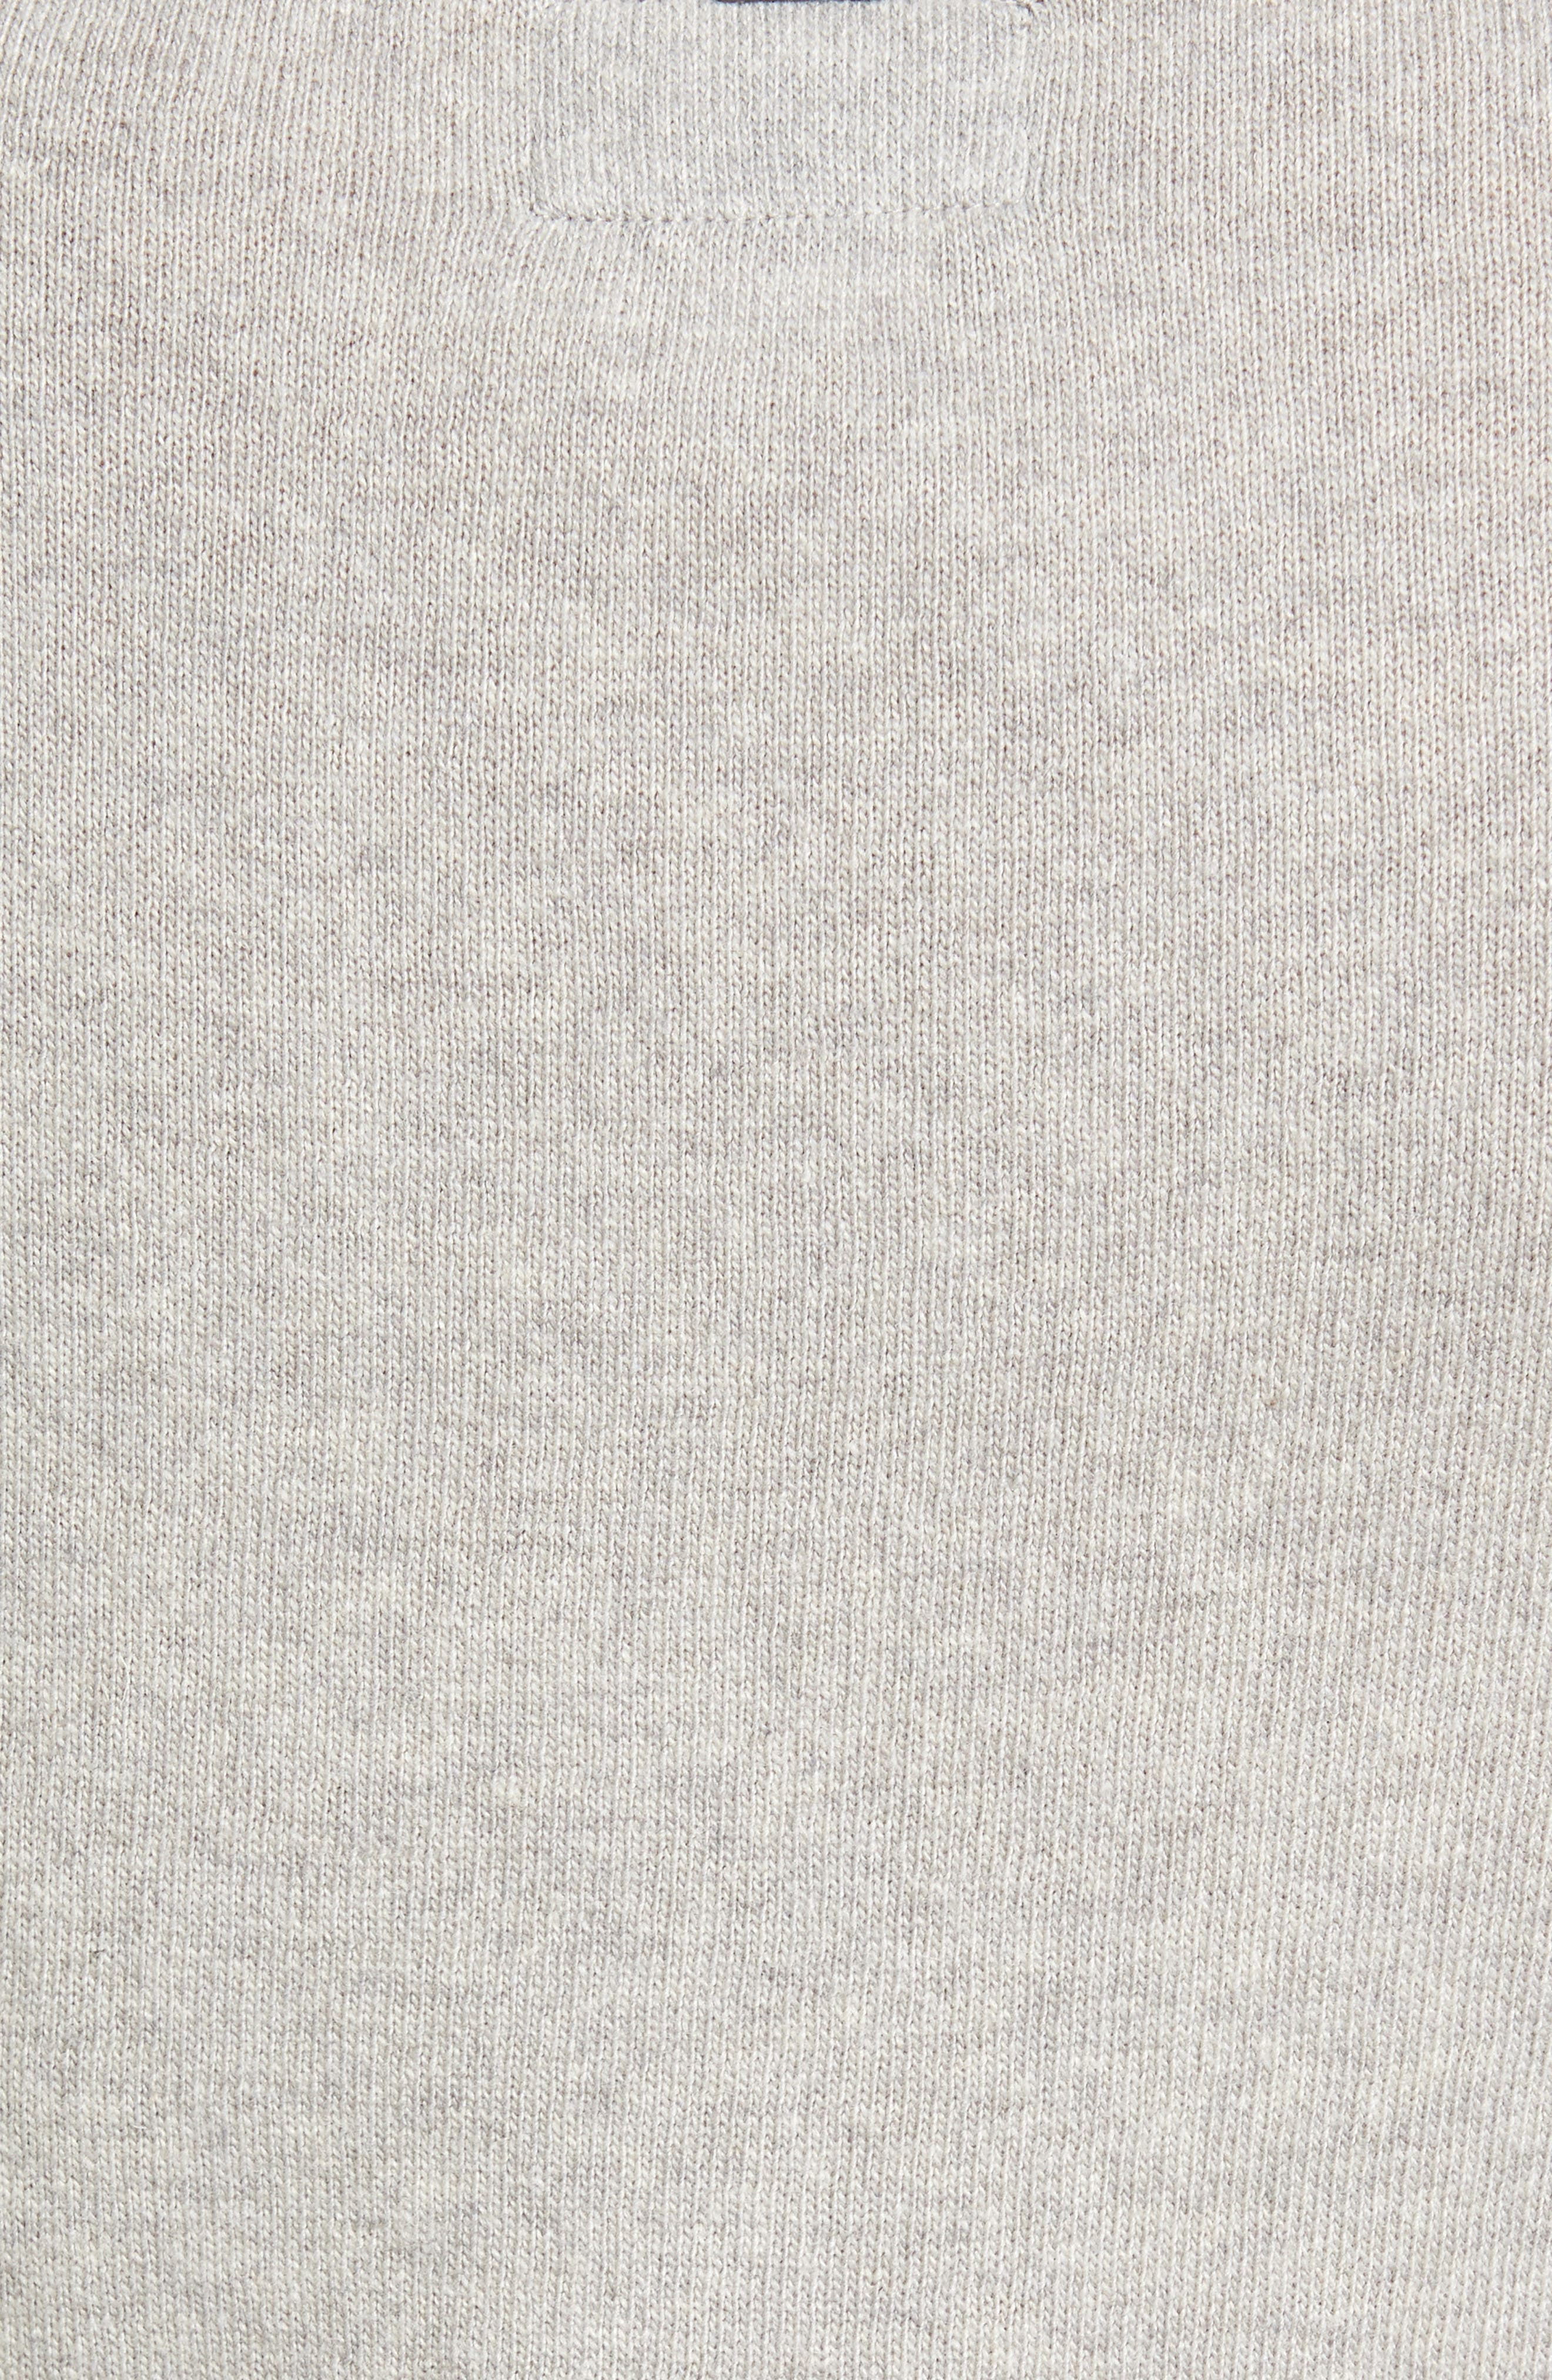 Mill Wool Blend Boatneck Sweater,                             Alternate thumbnail 5, color,                             050